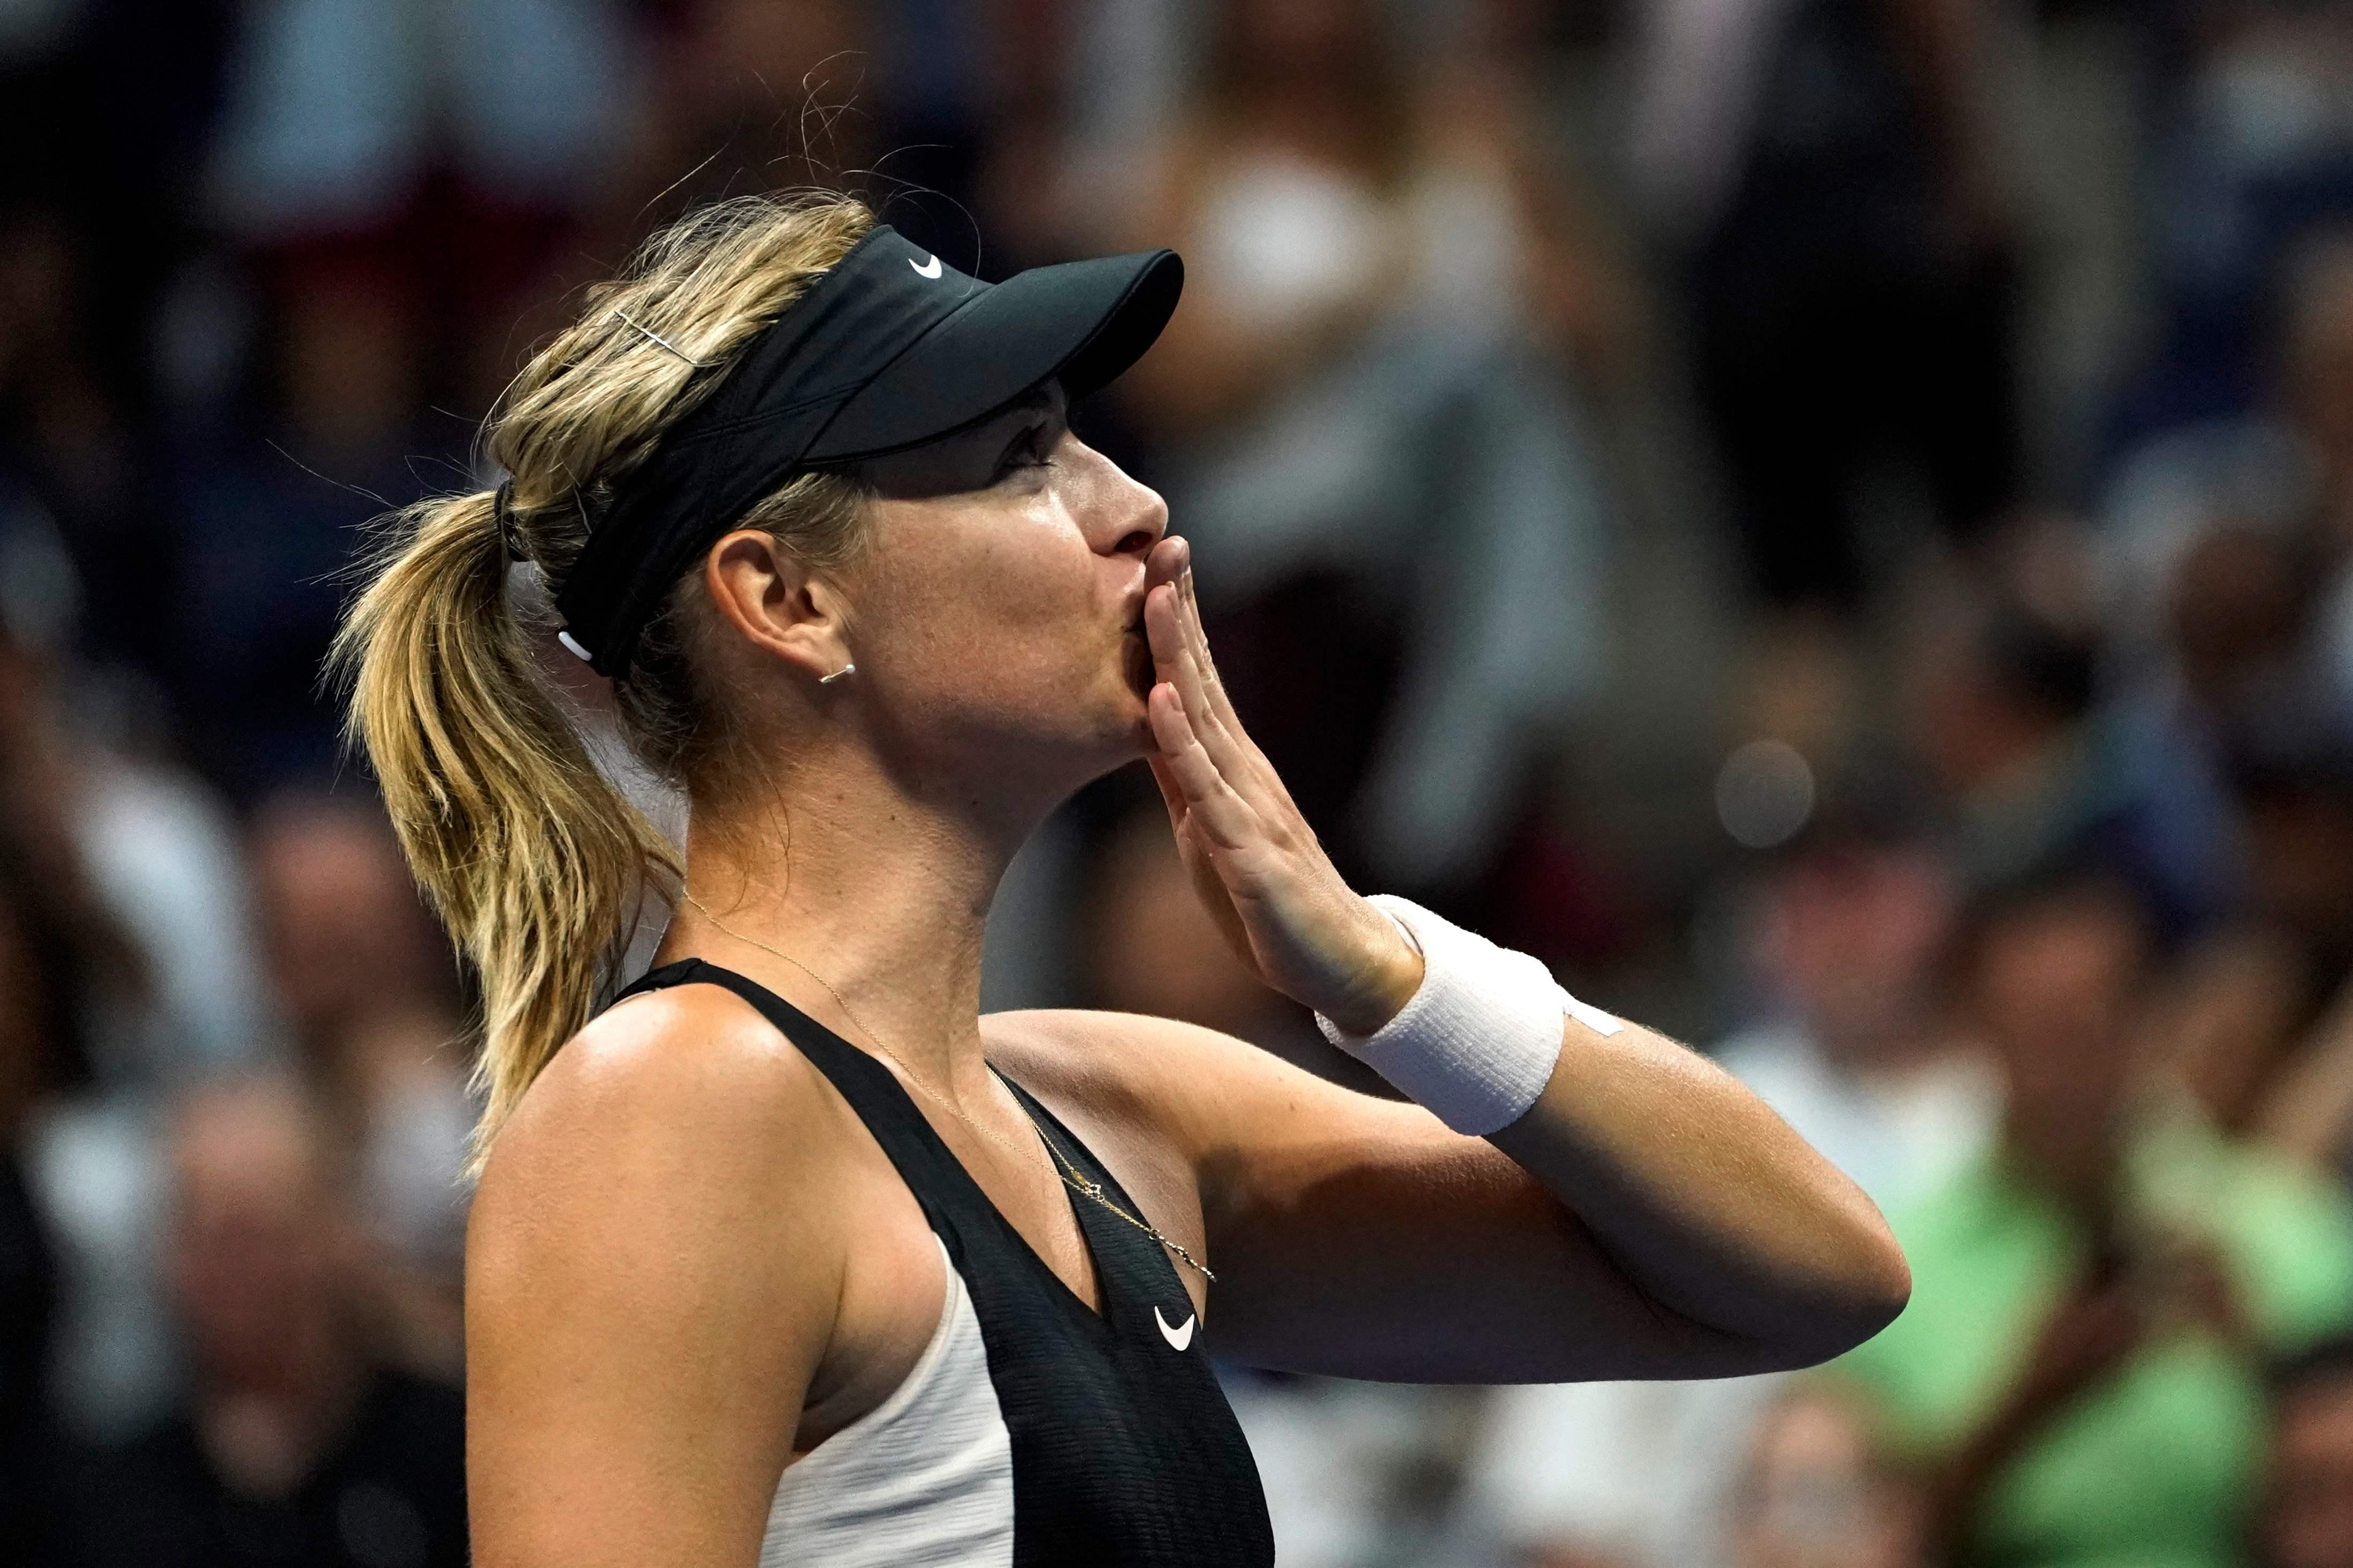 Maria Sharapova reached the last-16 of the US Open after beating JelenaOstapenko